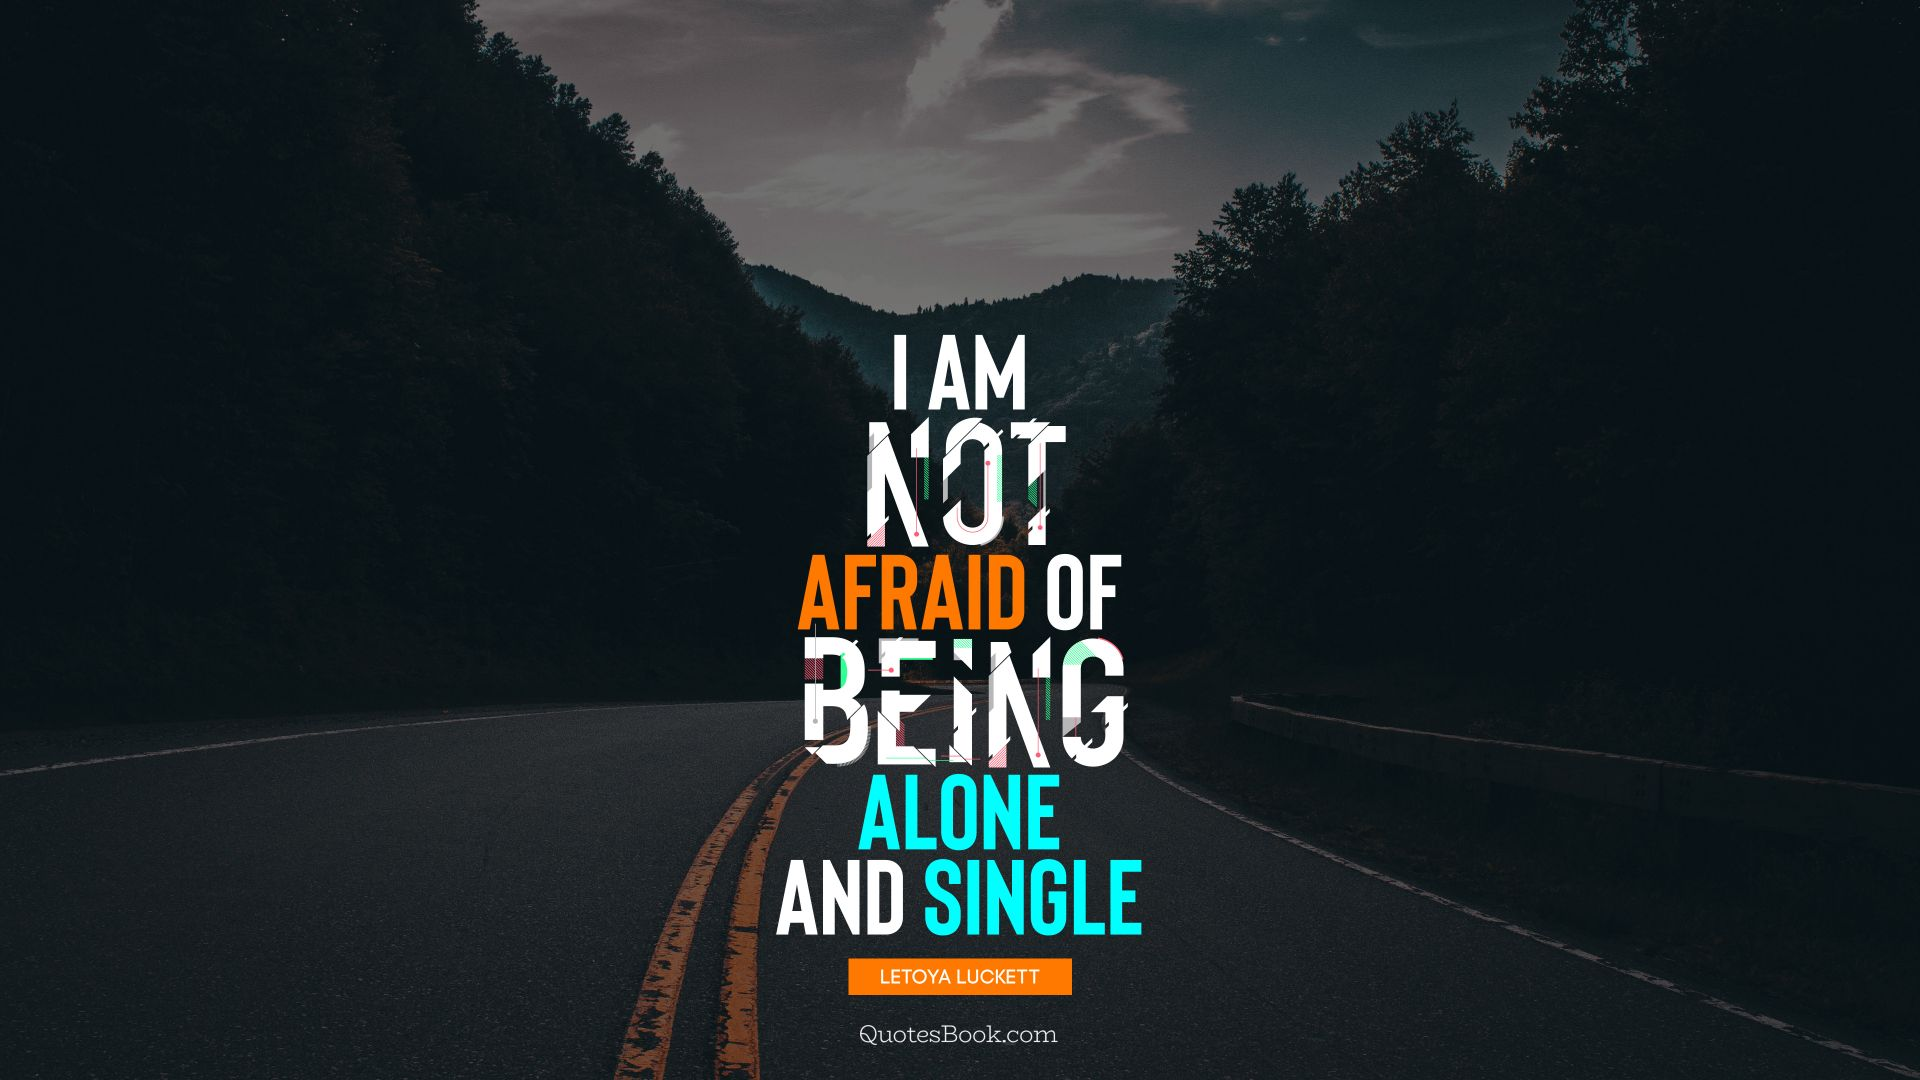 I am not afraid of being alone and single. - Quote by LeToya Luckett